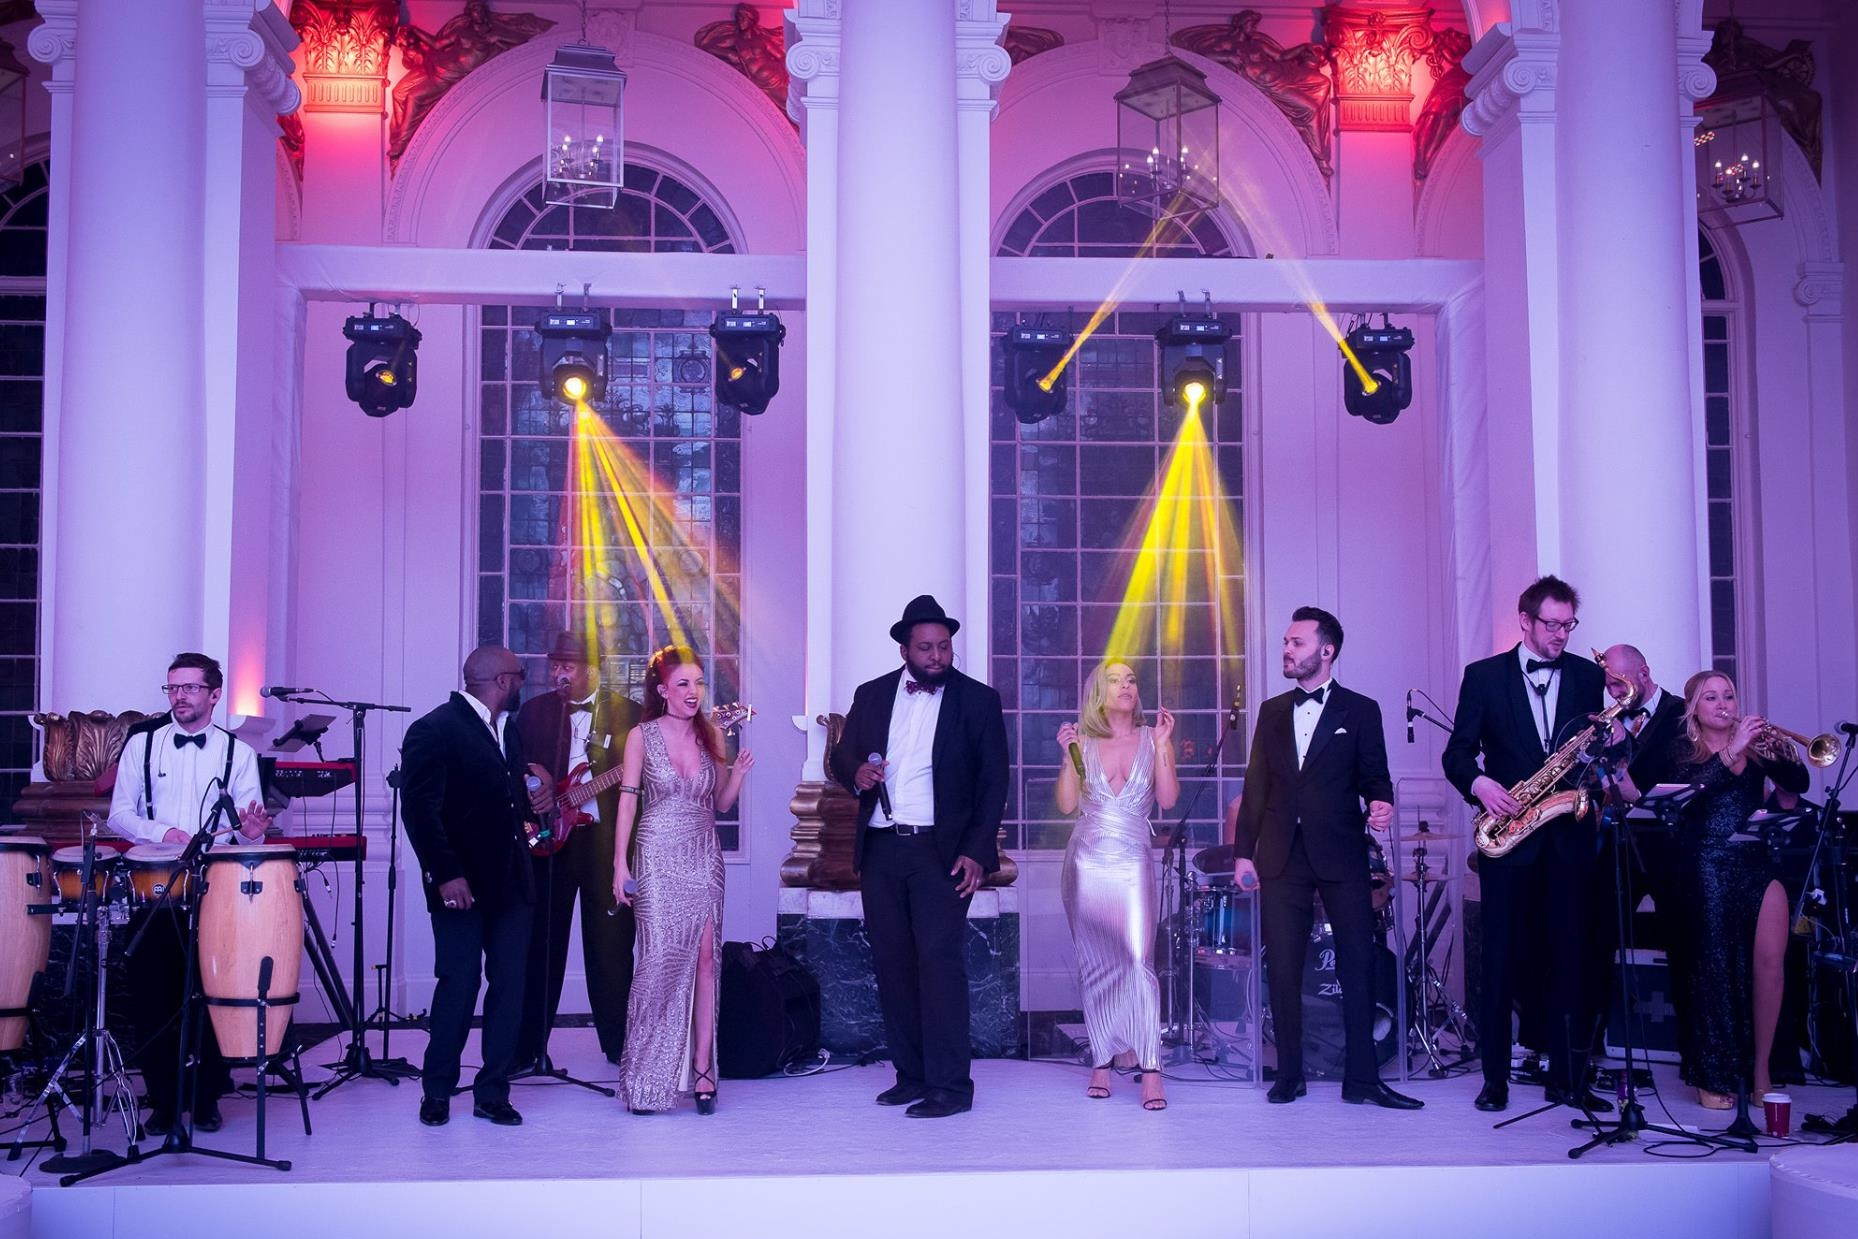 What's the best way to end a wedding? - Aside from opening the dance floor, the last song at a wedding can be one of the most emotional. Whether you want everyone swaying to something slow or jumping up and down it's important to pick the perfect final song for your wedding. TOTEM can help you pick the perfect song to end the night on a high with a dance floor full of the people you love celebrating with you.